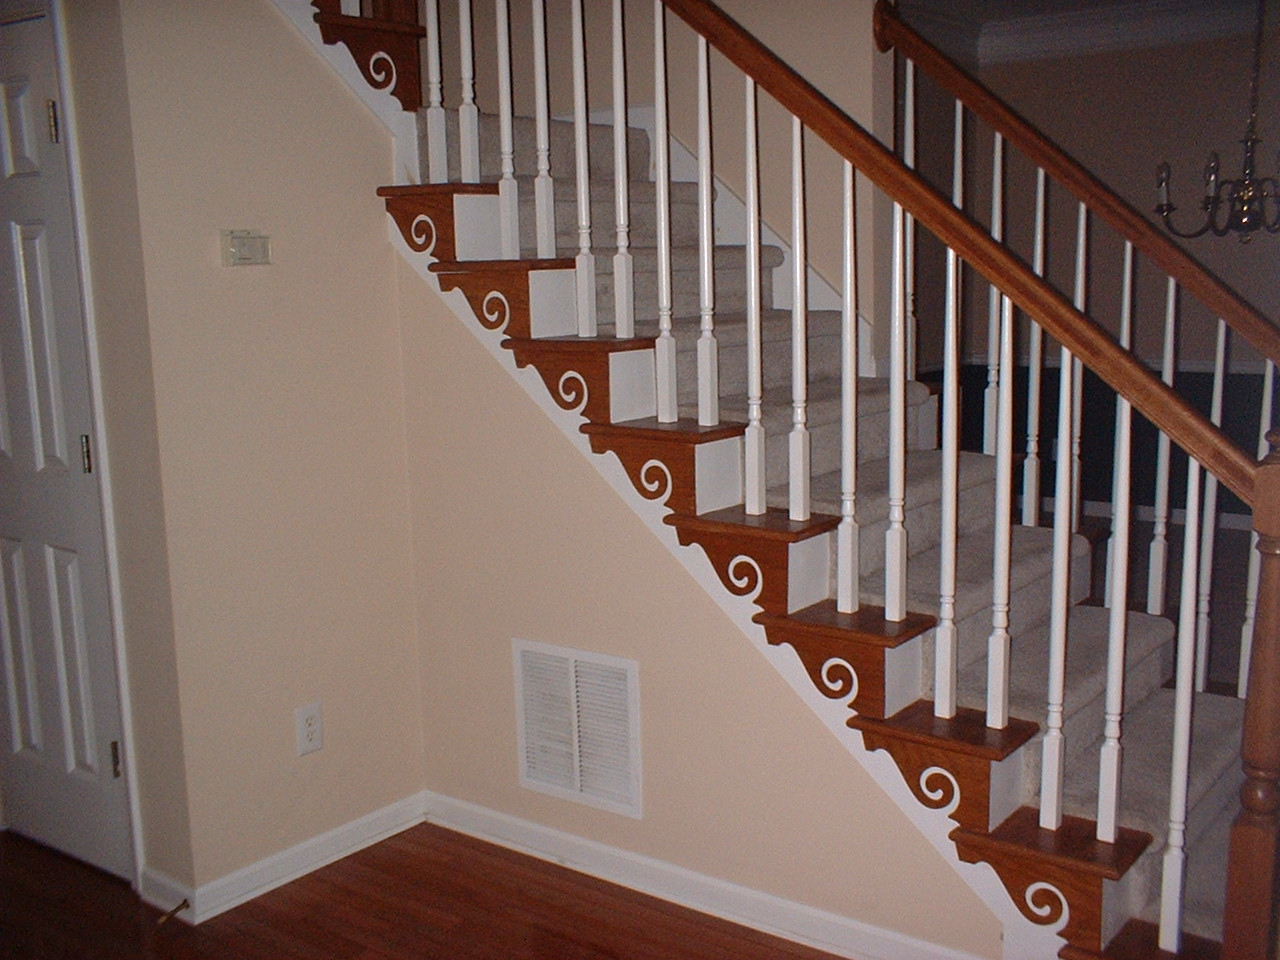 Staircase decorating ideas   davotanko home interior